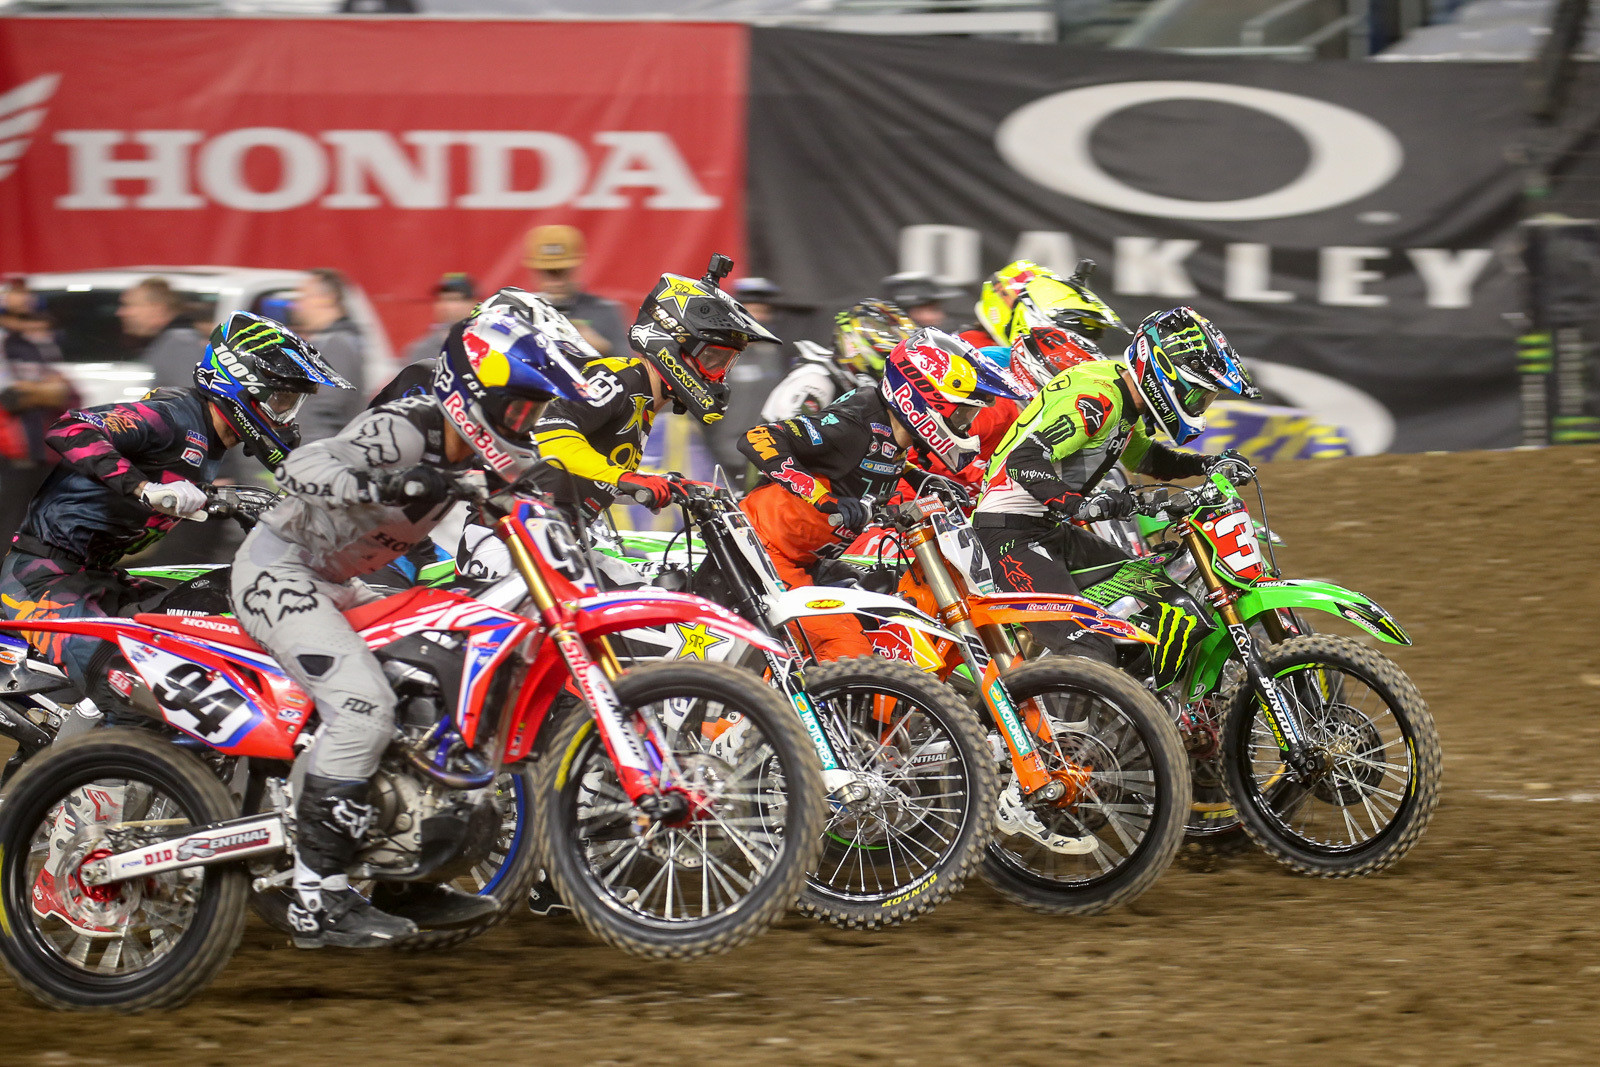 Eli Tomac's heat race start was spot-on. The main event start? Not as much.